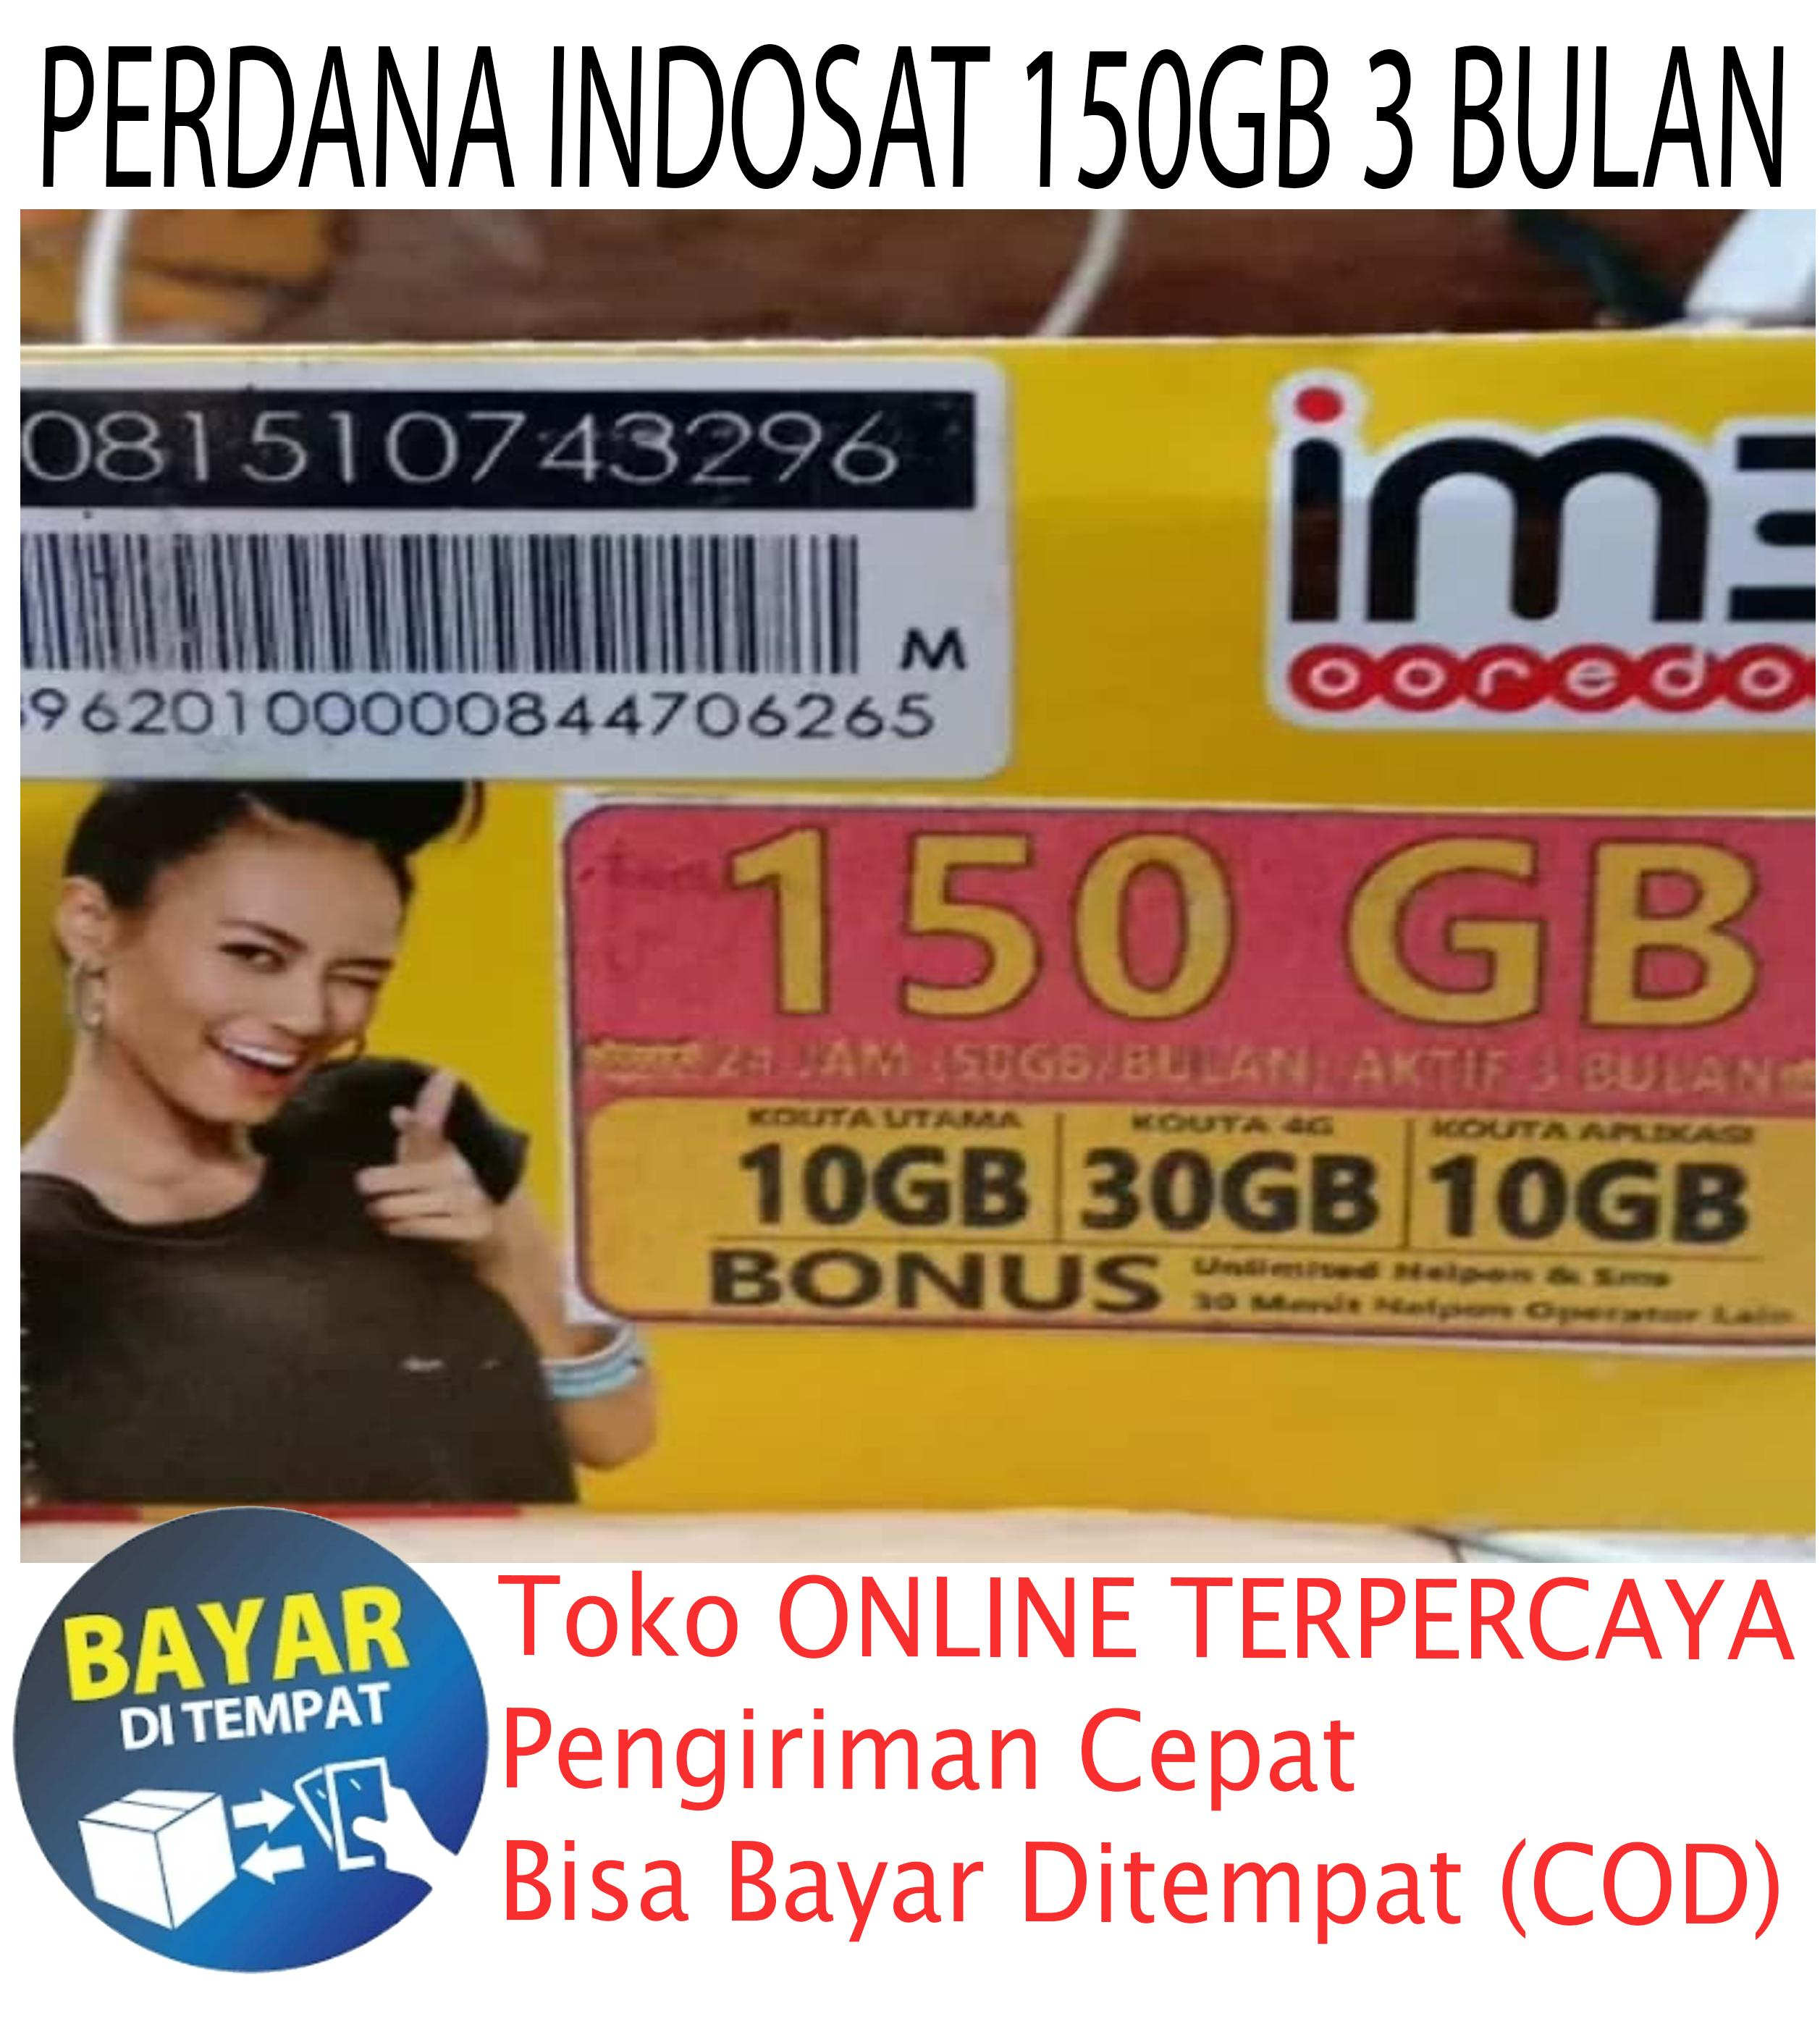 Kartu Perdana Kuota Internet Indosat 150gb 3 Bulan / Perbulan 50gb By Hr Collection.